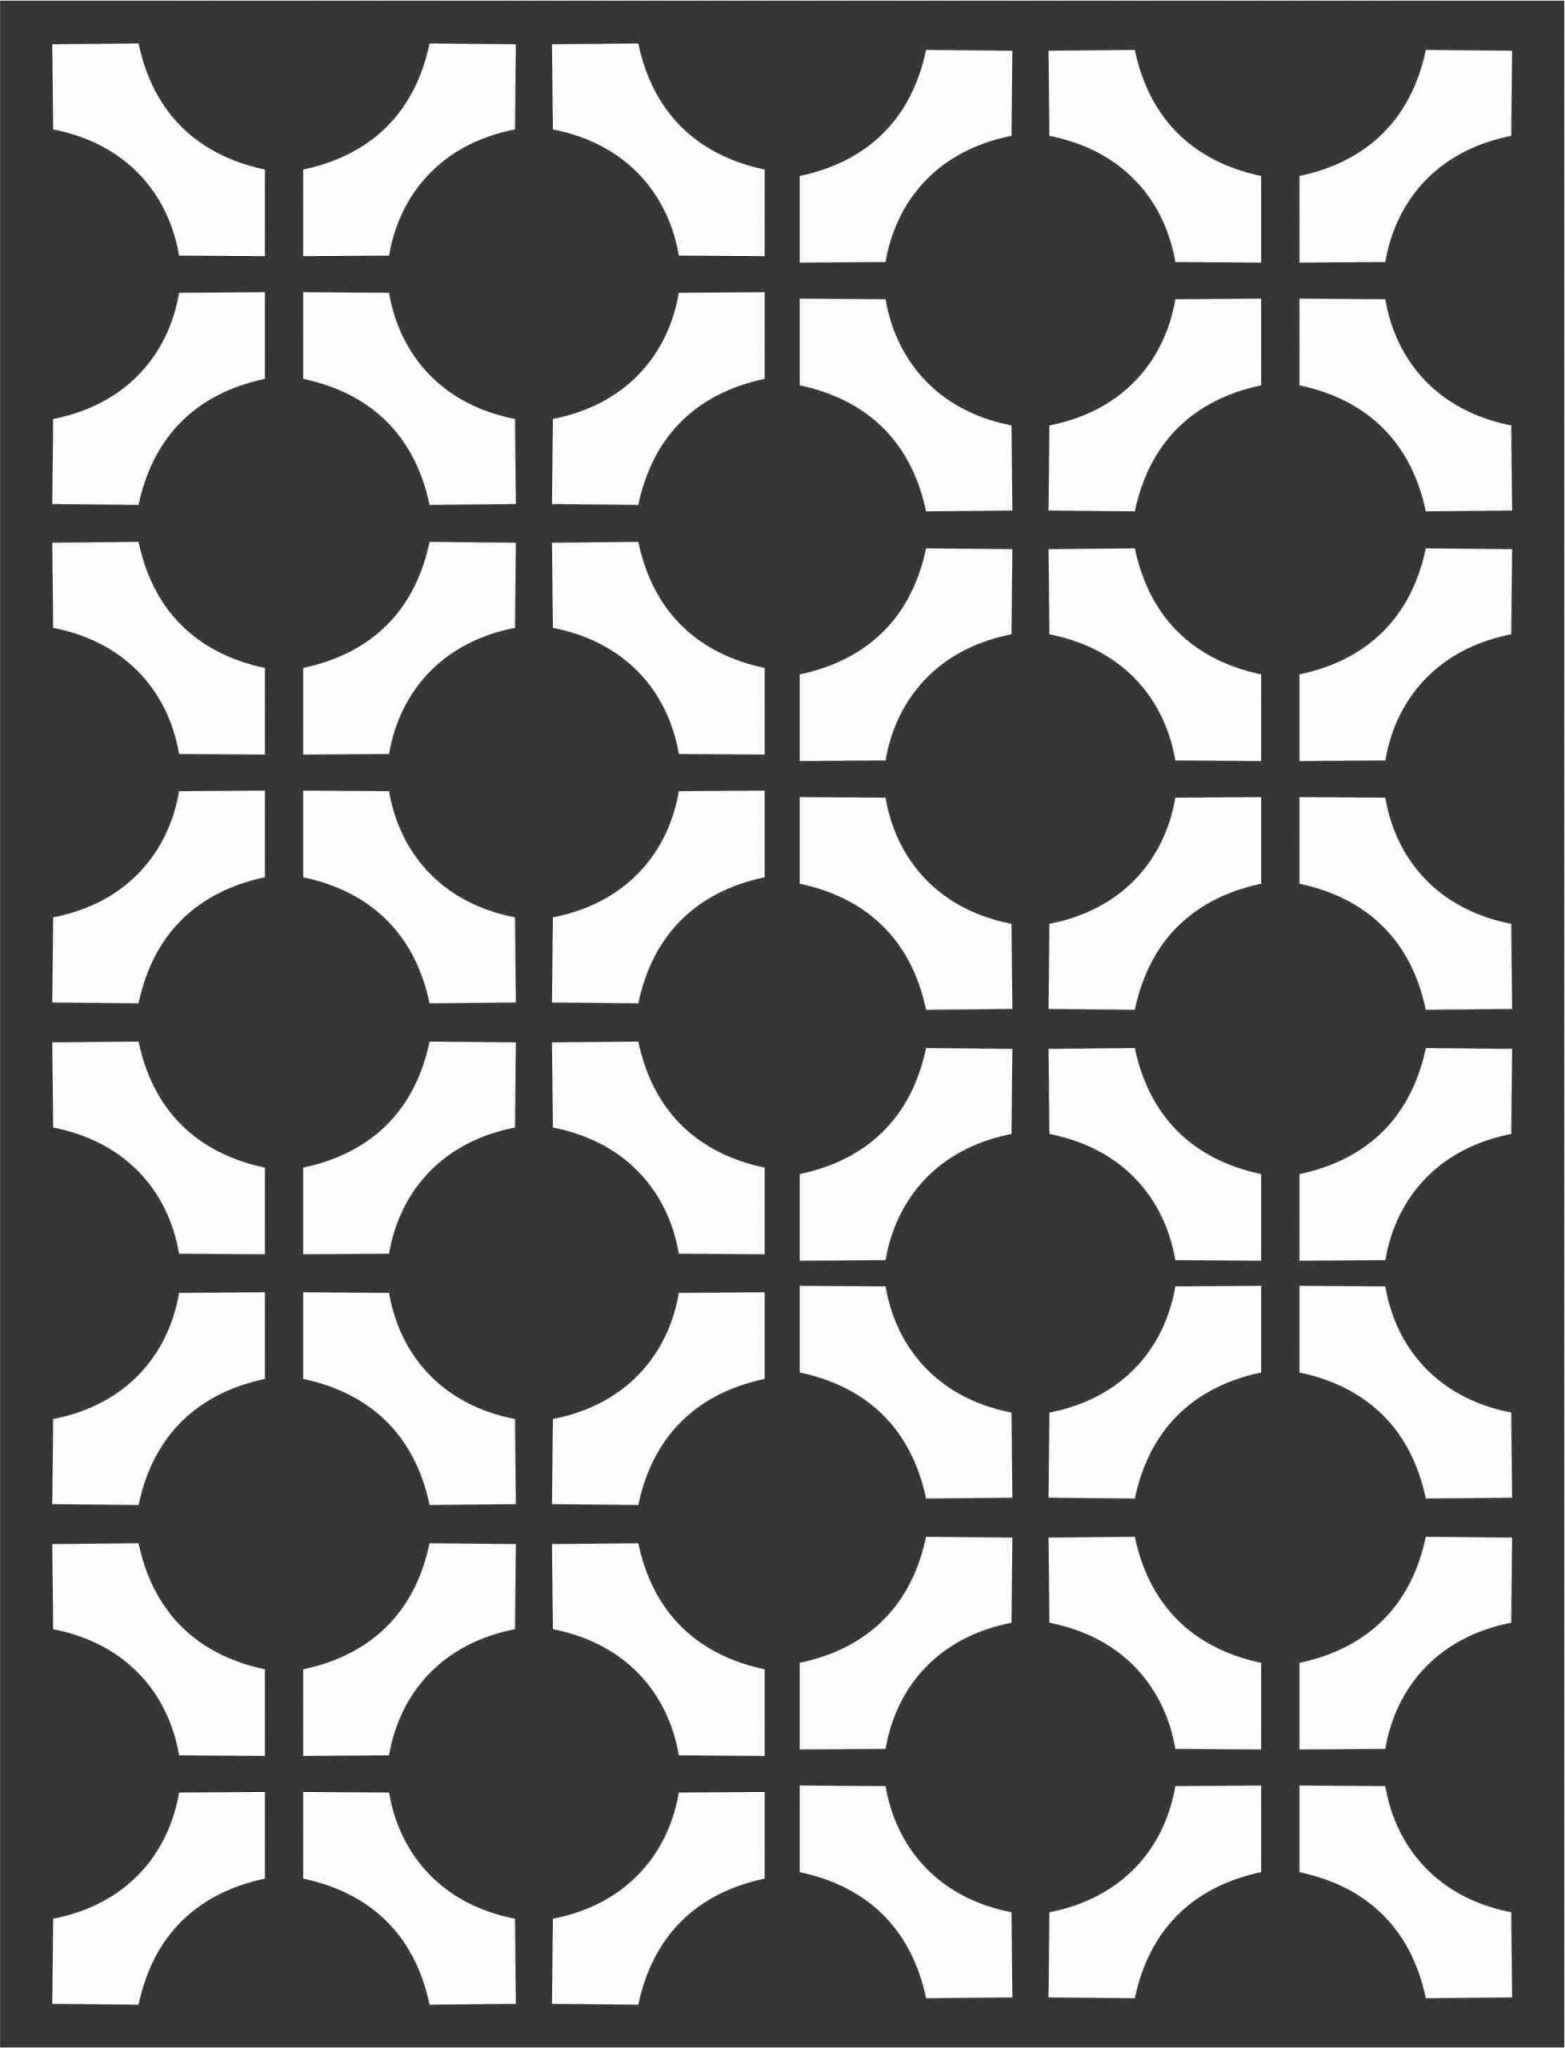 Floral Screen Patterns Design 38 Free DXF File